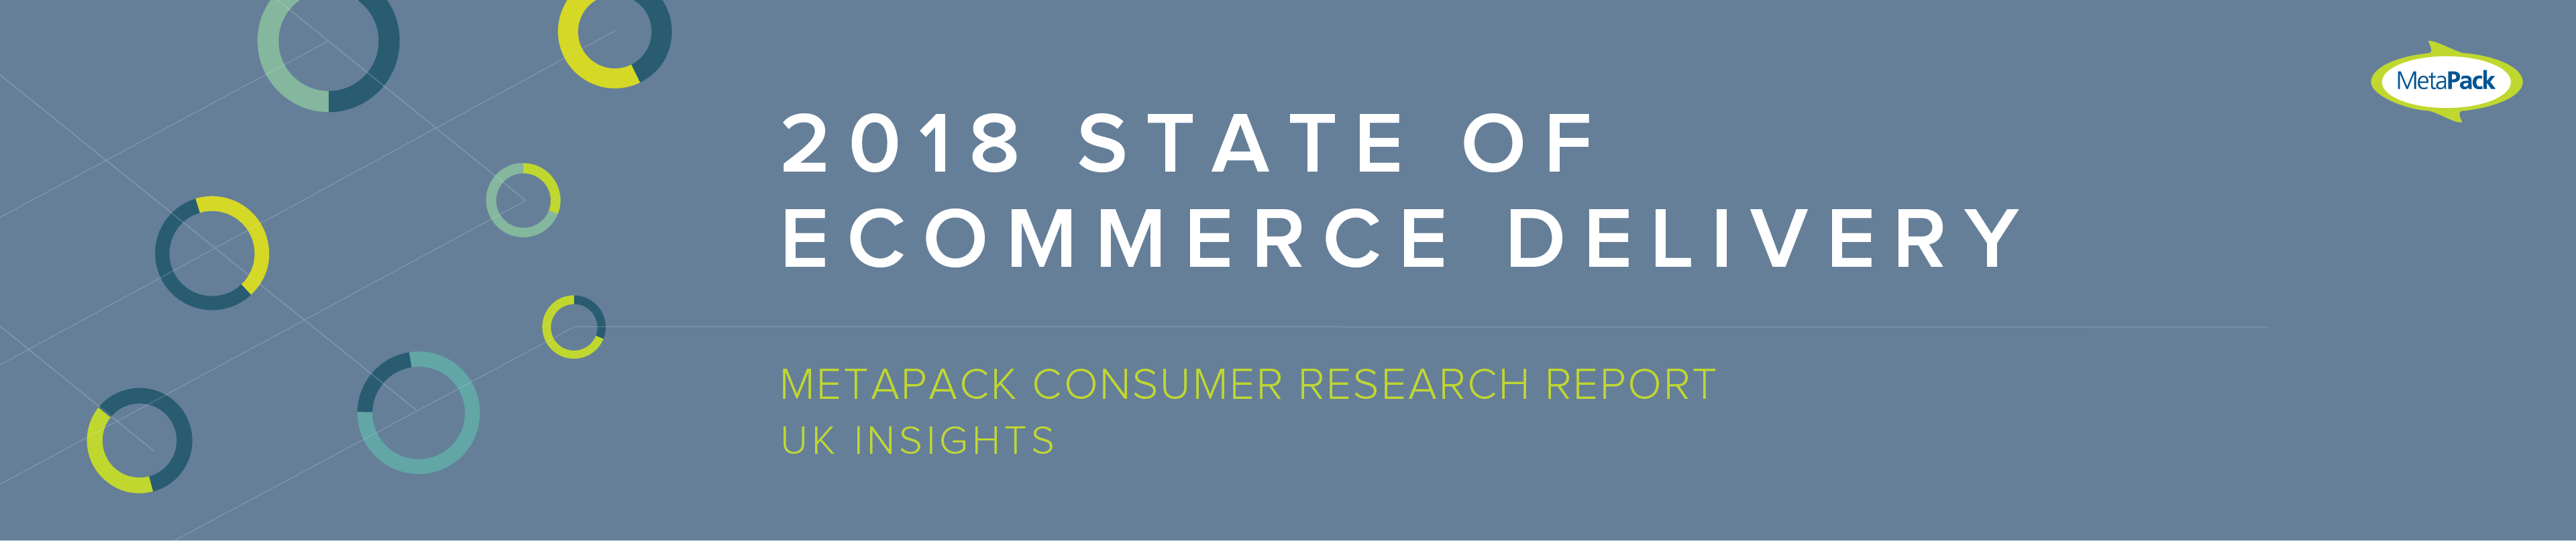 state of ecommerce report uk insights